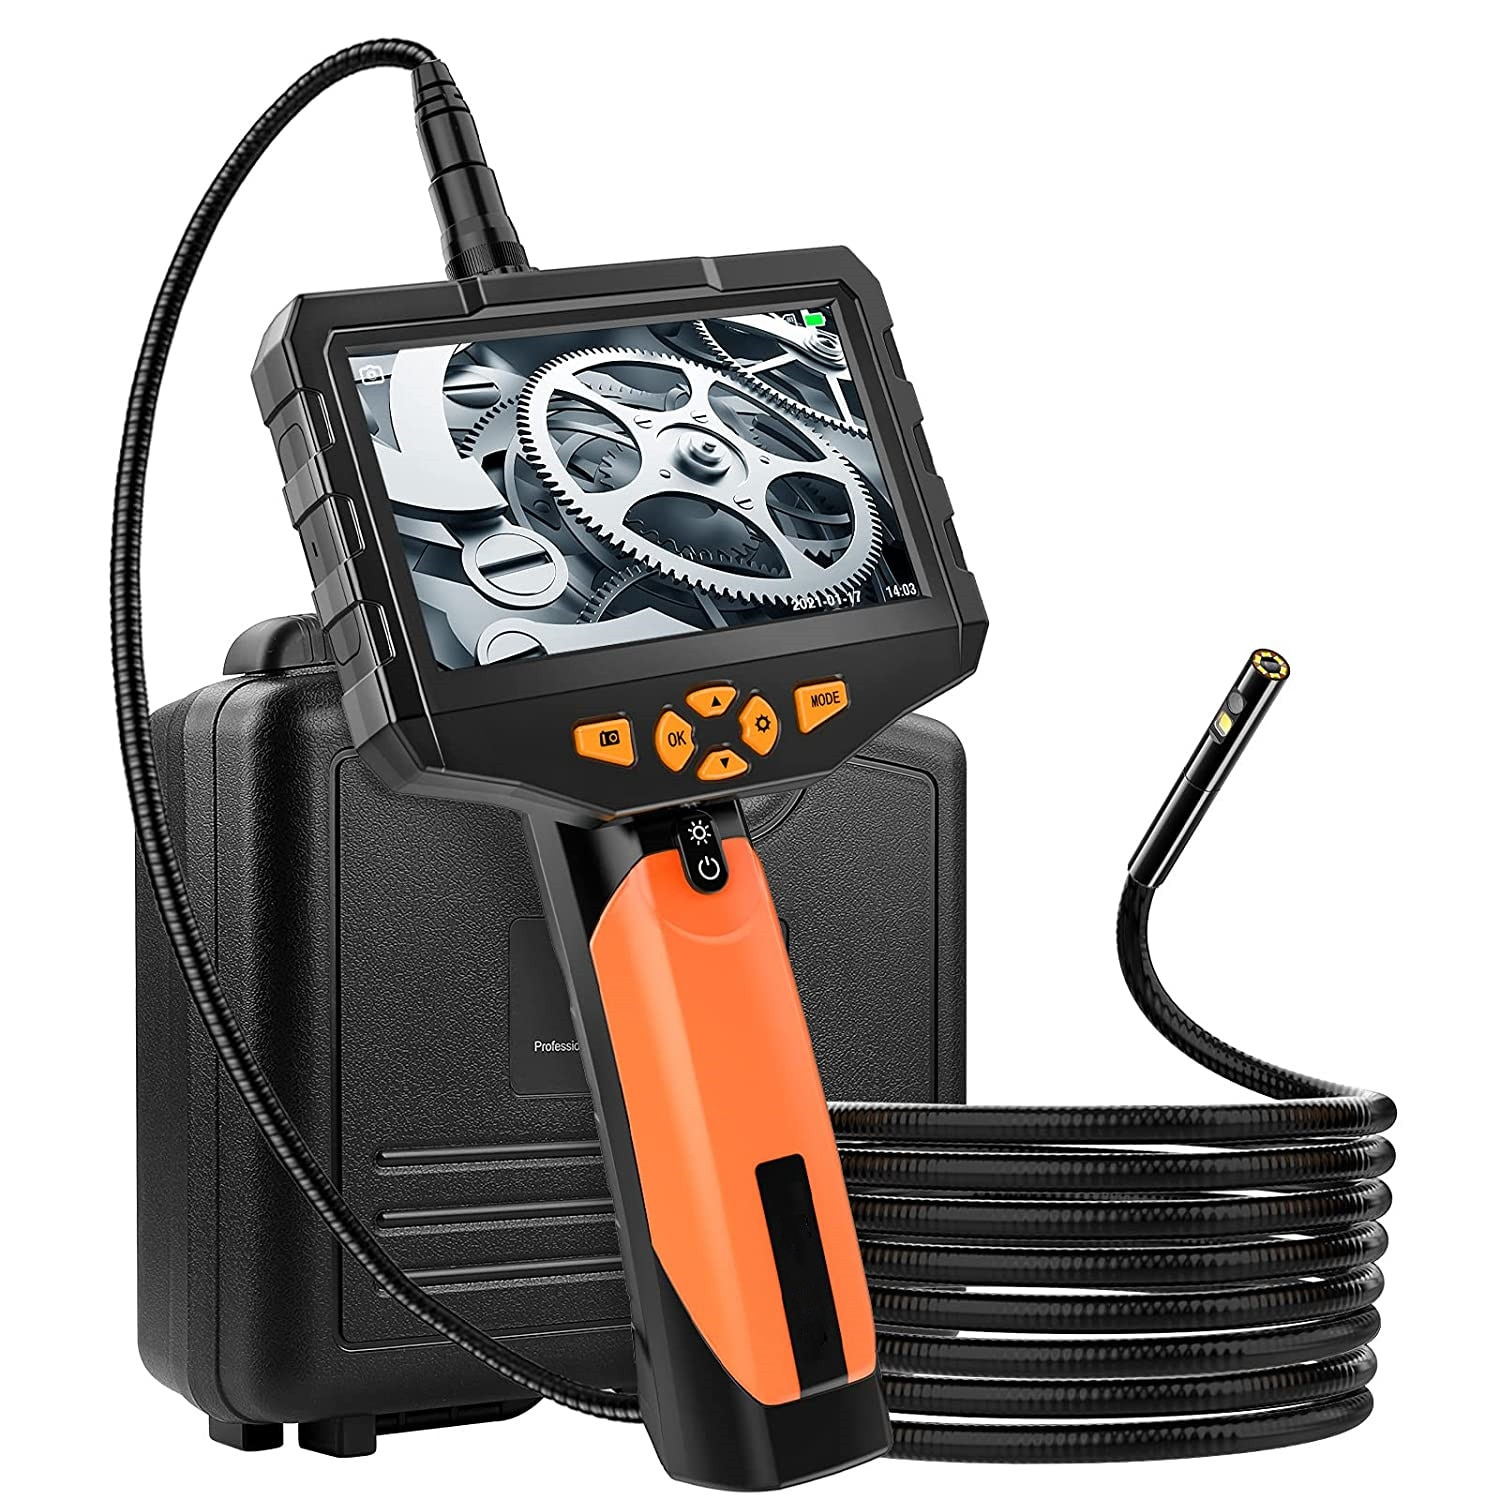 Review 5.5MM 8MM Handheld Dual Lens Endoscope Camera 5″ IPS Screen Industrial Borescope 1080P Inspection Snake Camera with 32GB Card